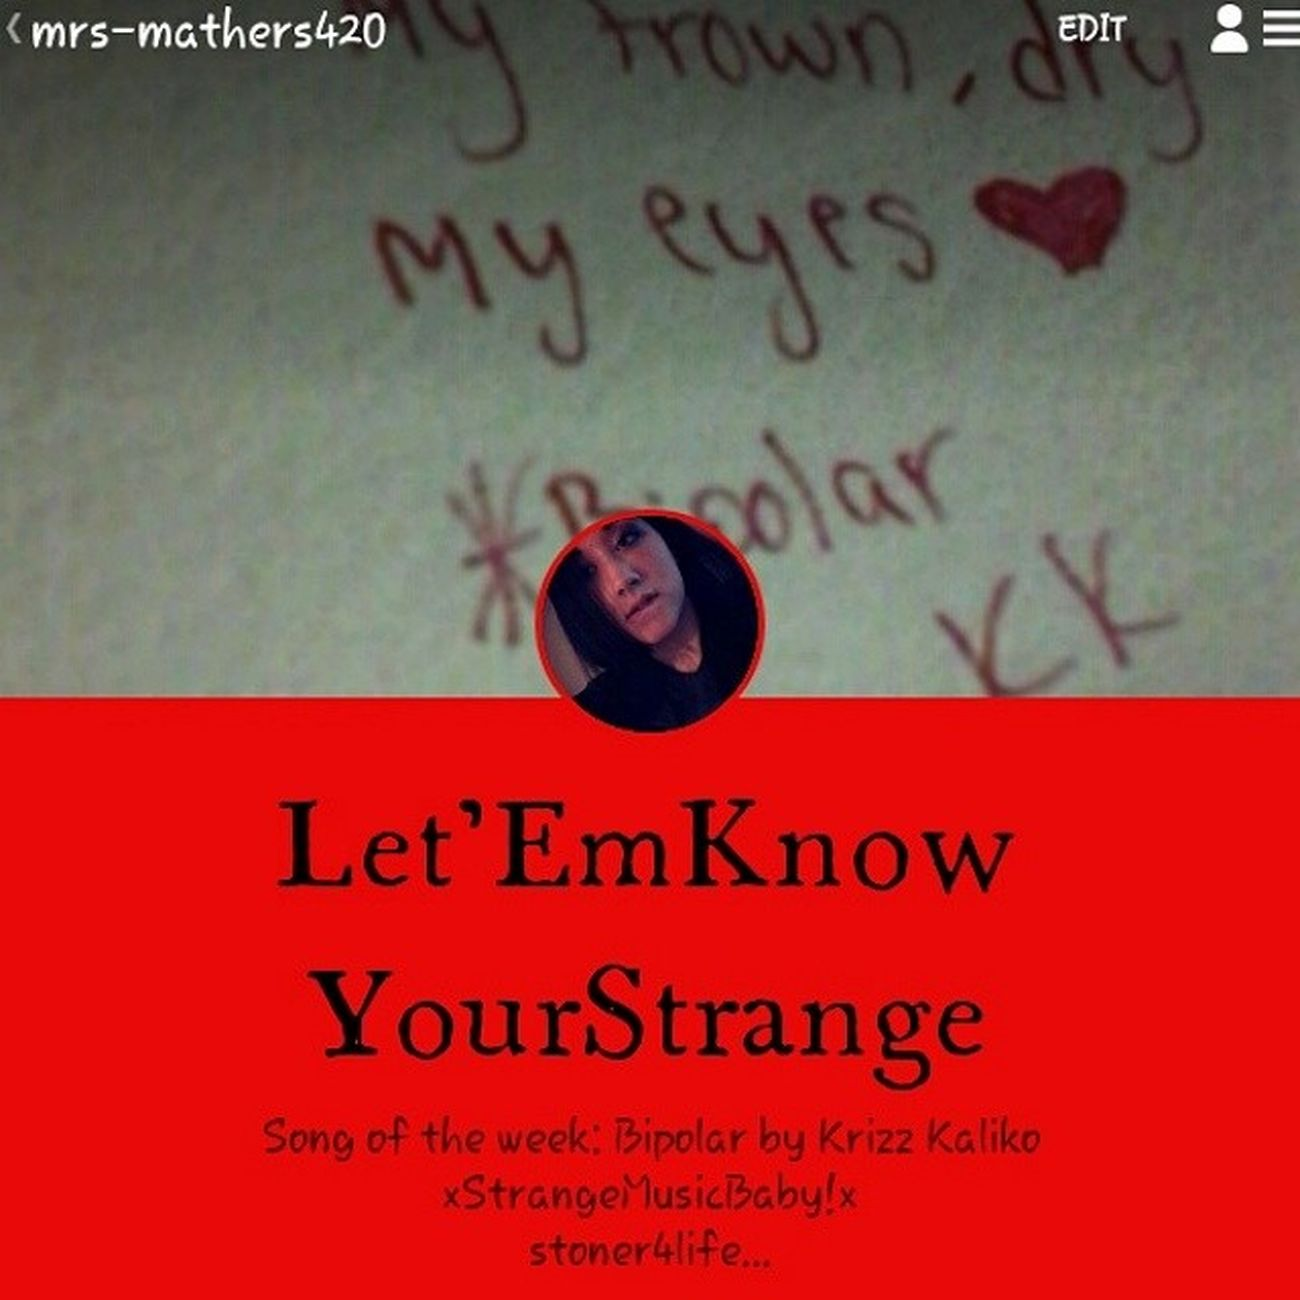 I would really like it if you would Followme on Tumblr , Ipromise  I will Followback ! Im going to be posting Videos and Stories and I really would like your guys Opinins soo if you have tumblr please follow me it will be Greatlyappreciated to know what Others think of my stories and such. :3 thanks. StrangeMusic Stoner Weed Deep Art Musicforlife  SUPPORT